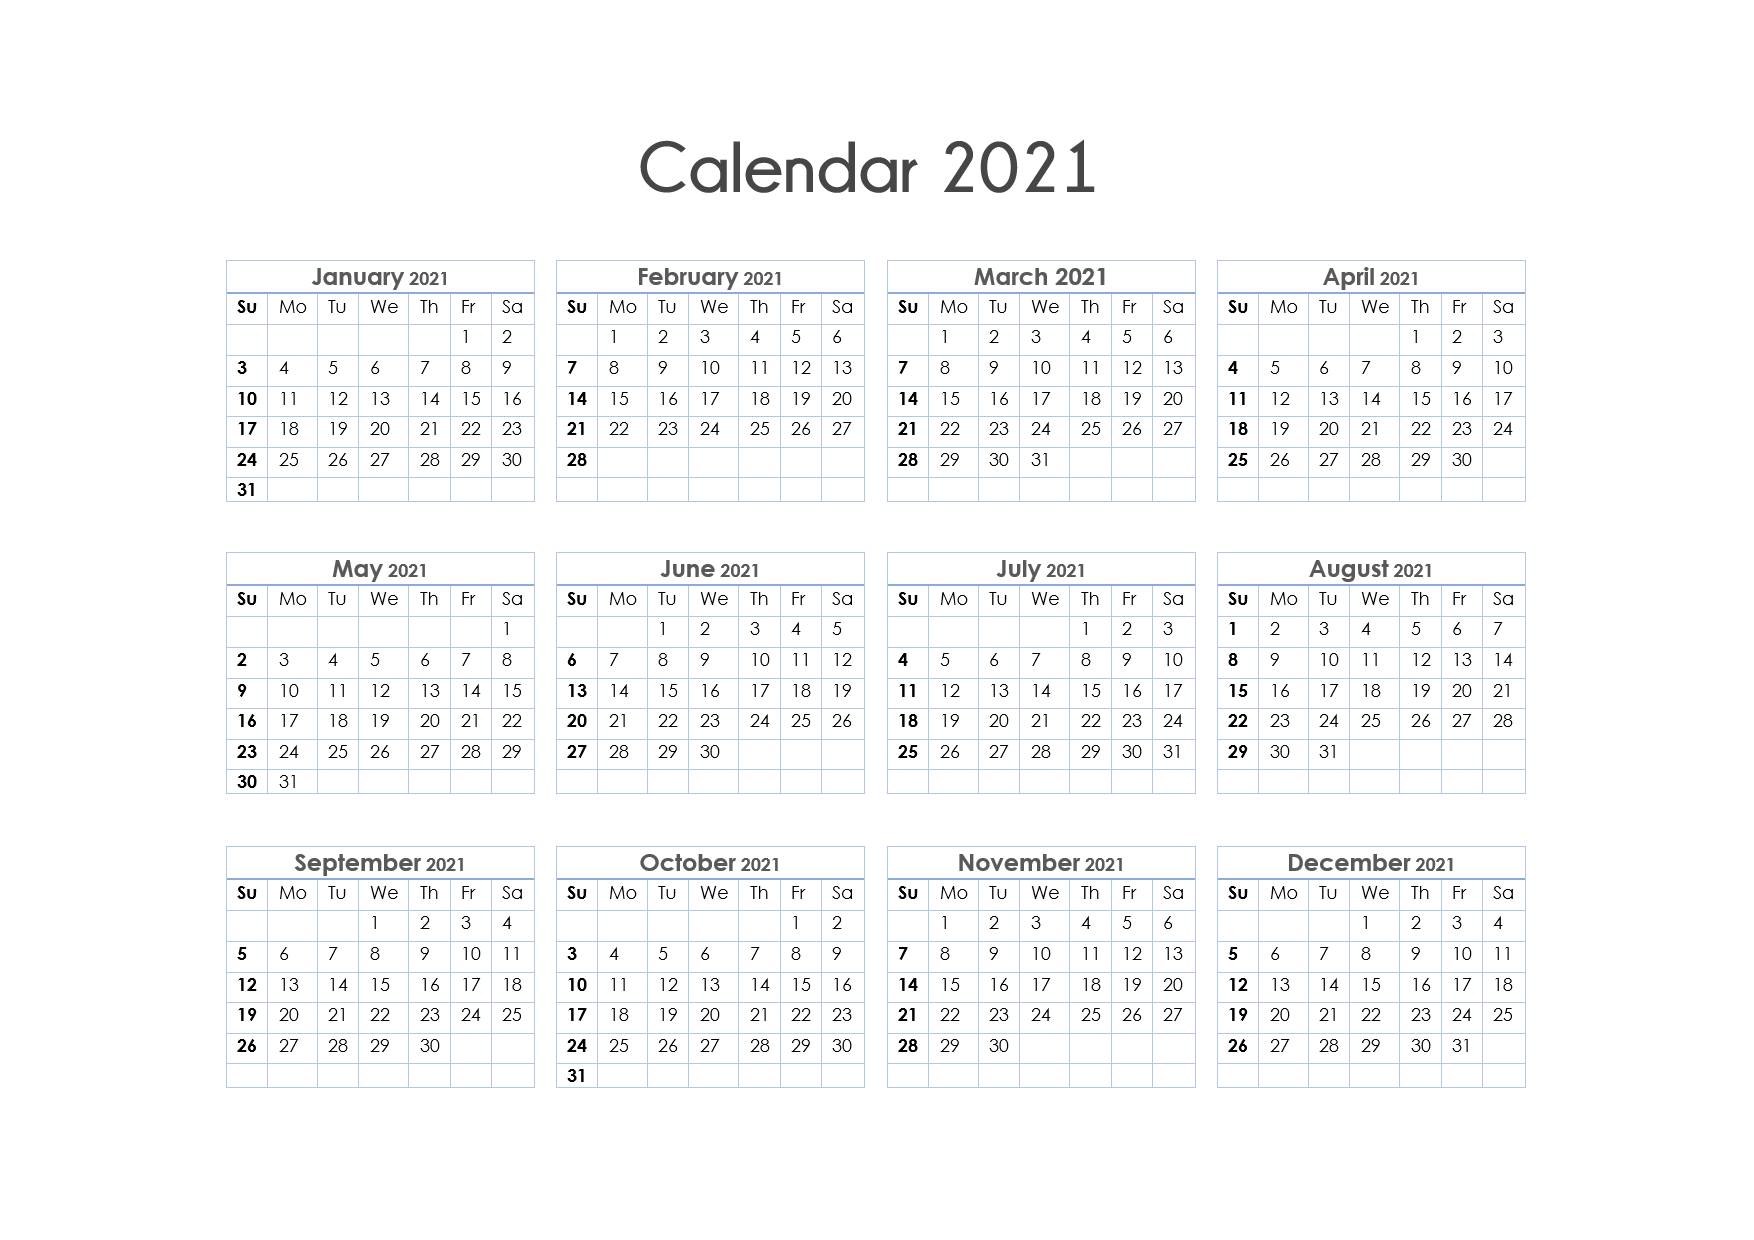 56+ Printable Calendar 2021 One Page, Us 2021 Calendar within Free Print 2021 Calendars Without Downloading